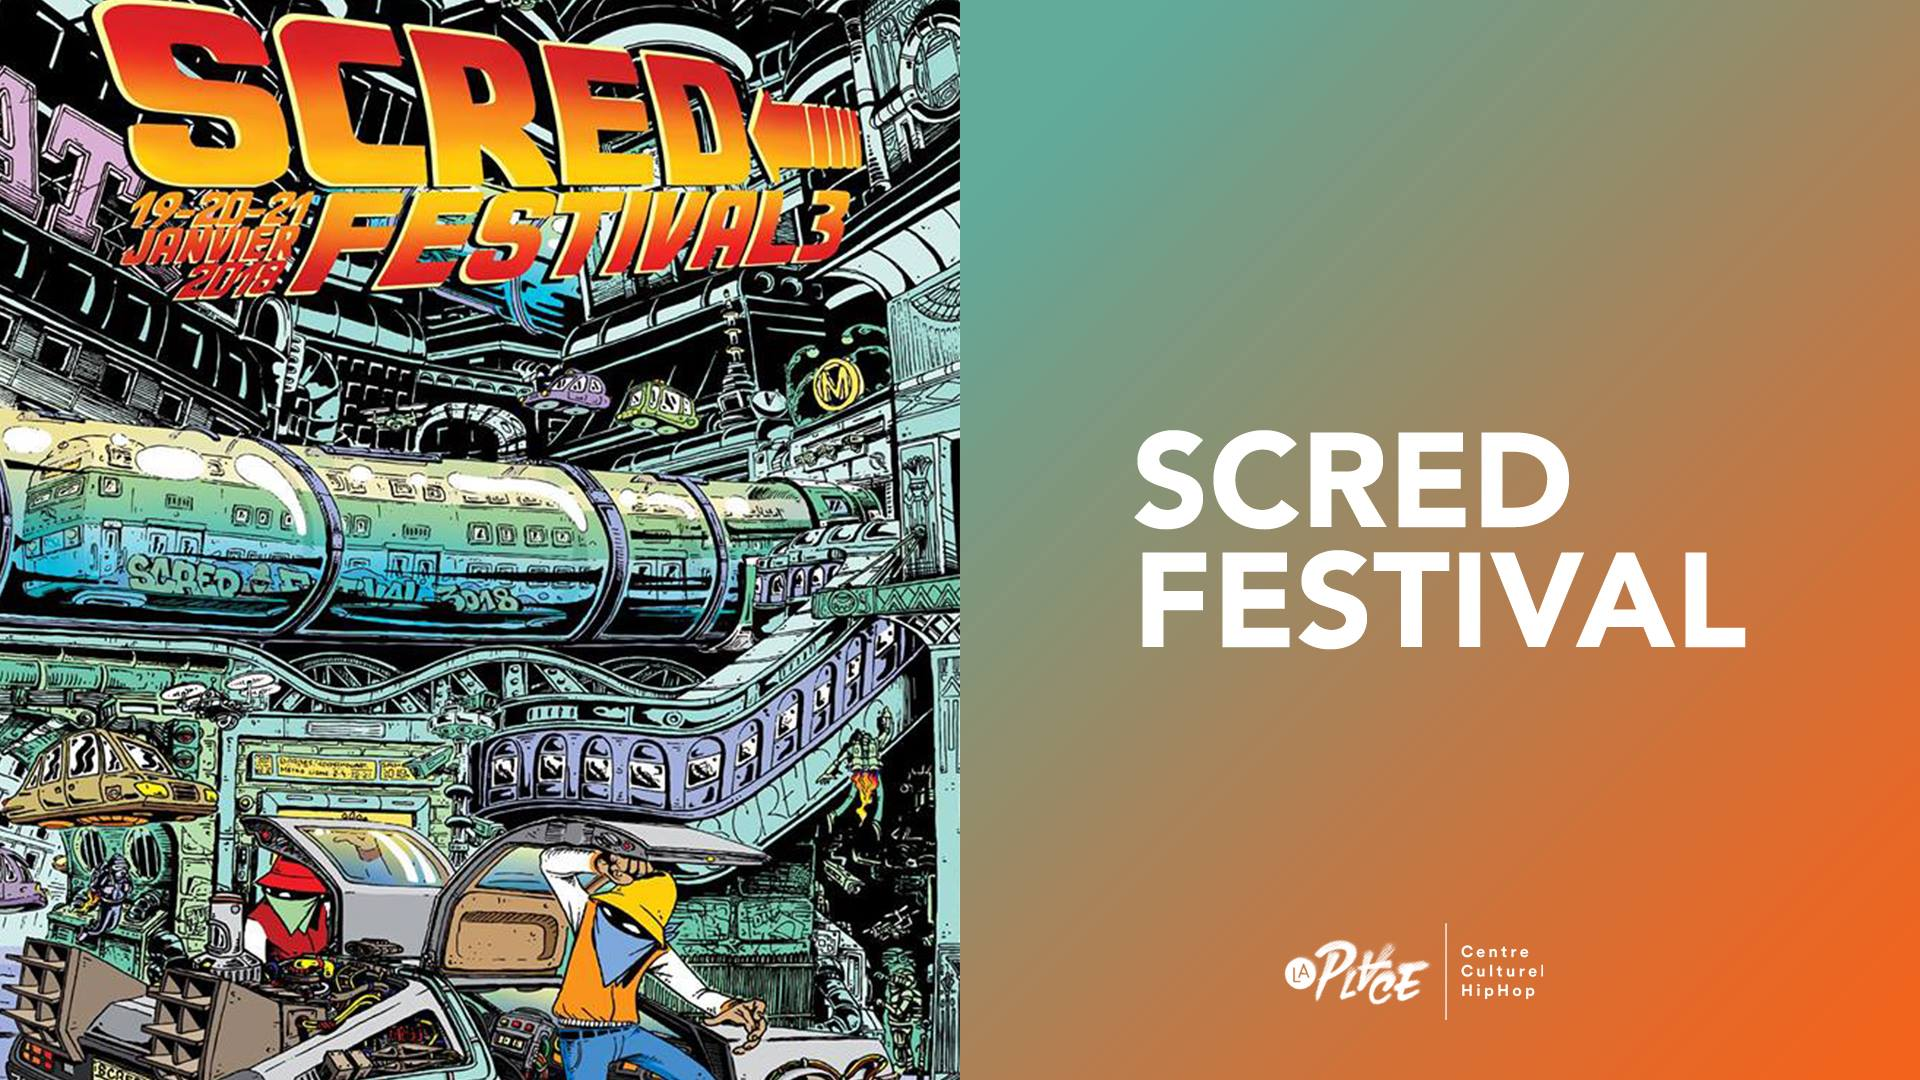 SCRED festival • Battle danse et contest rap